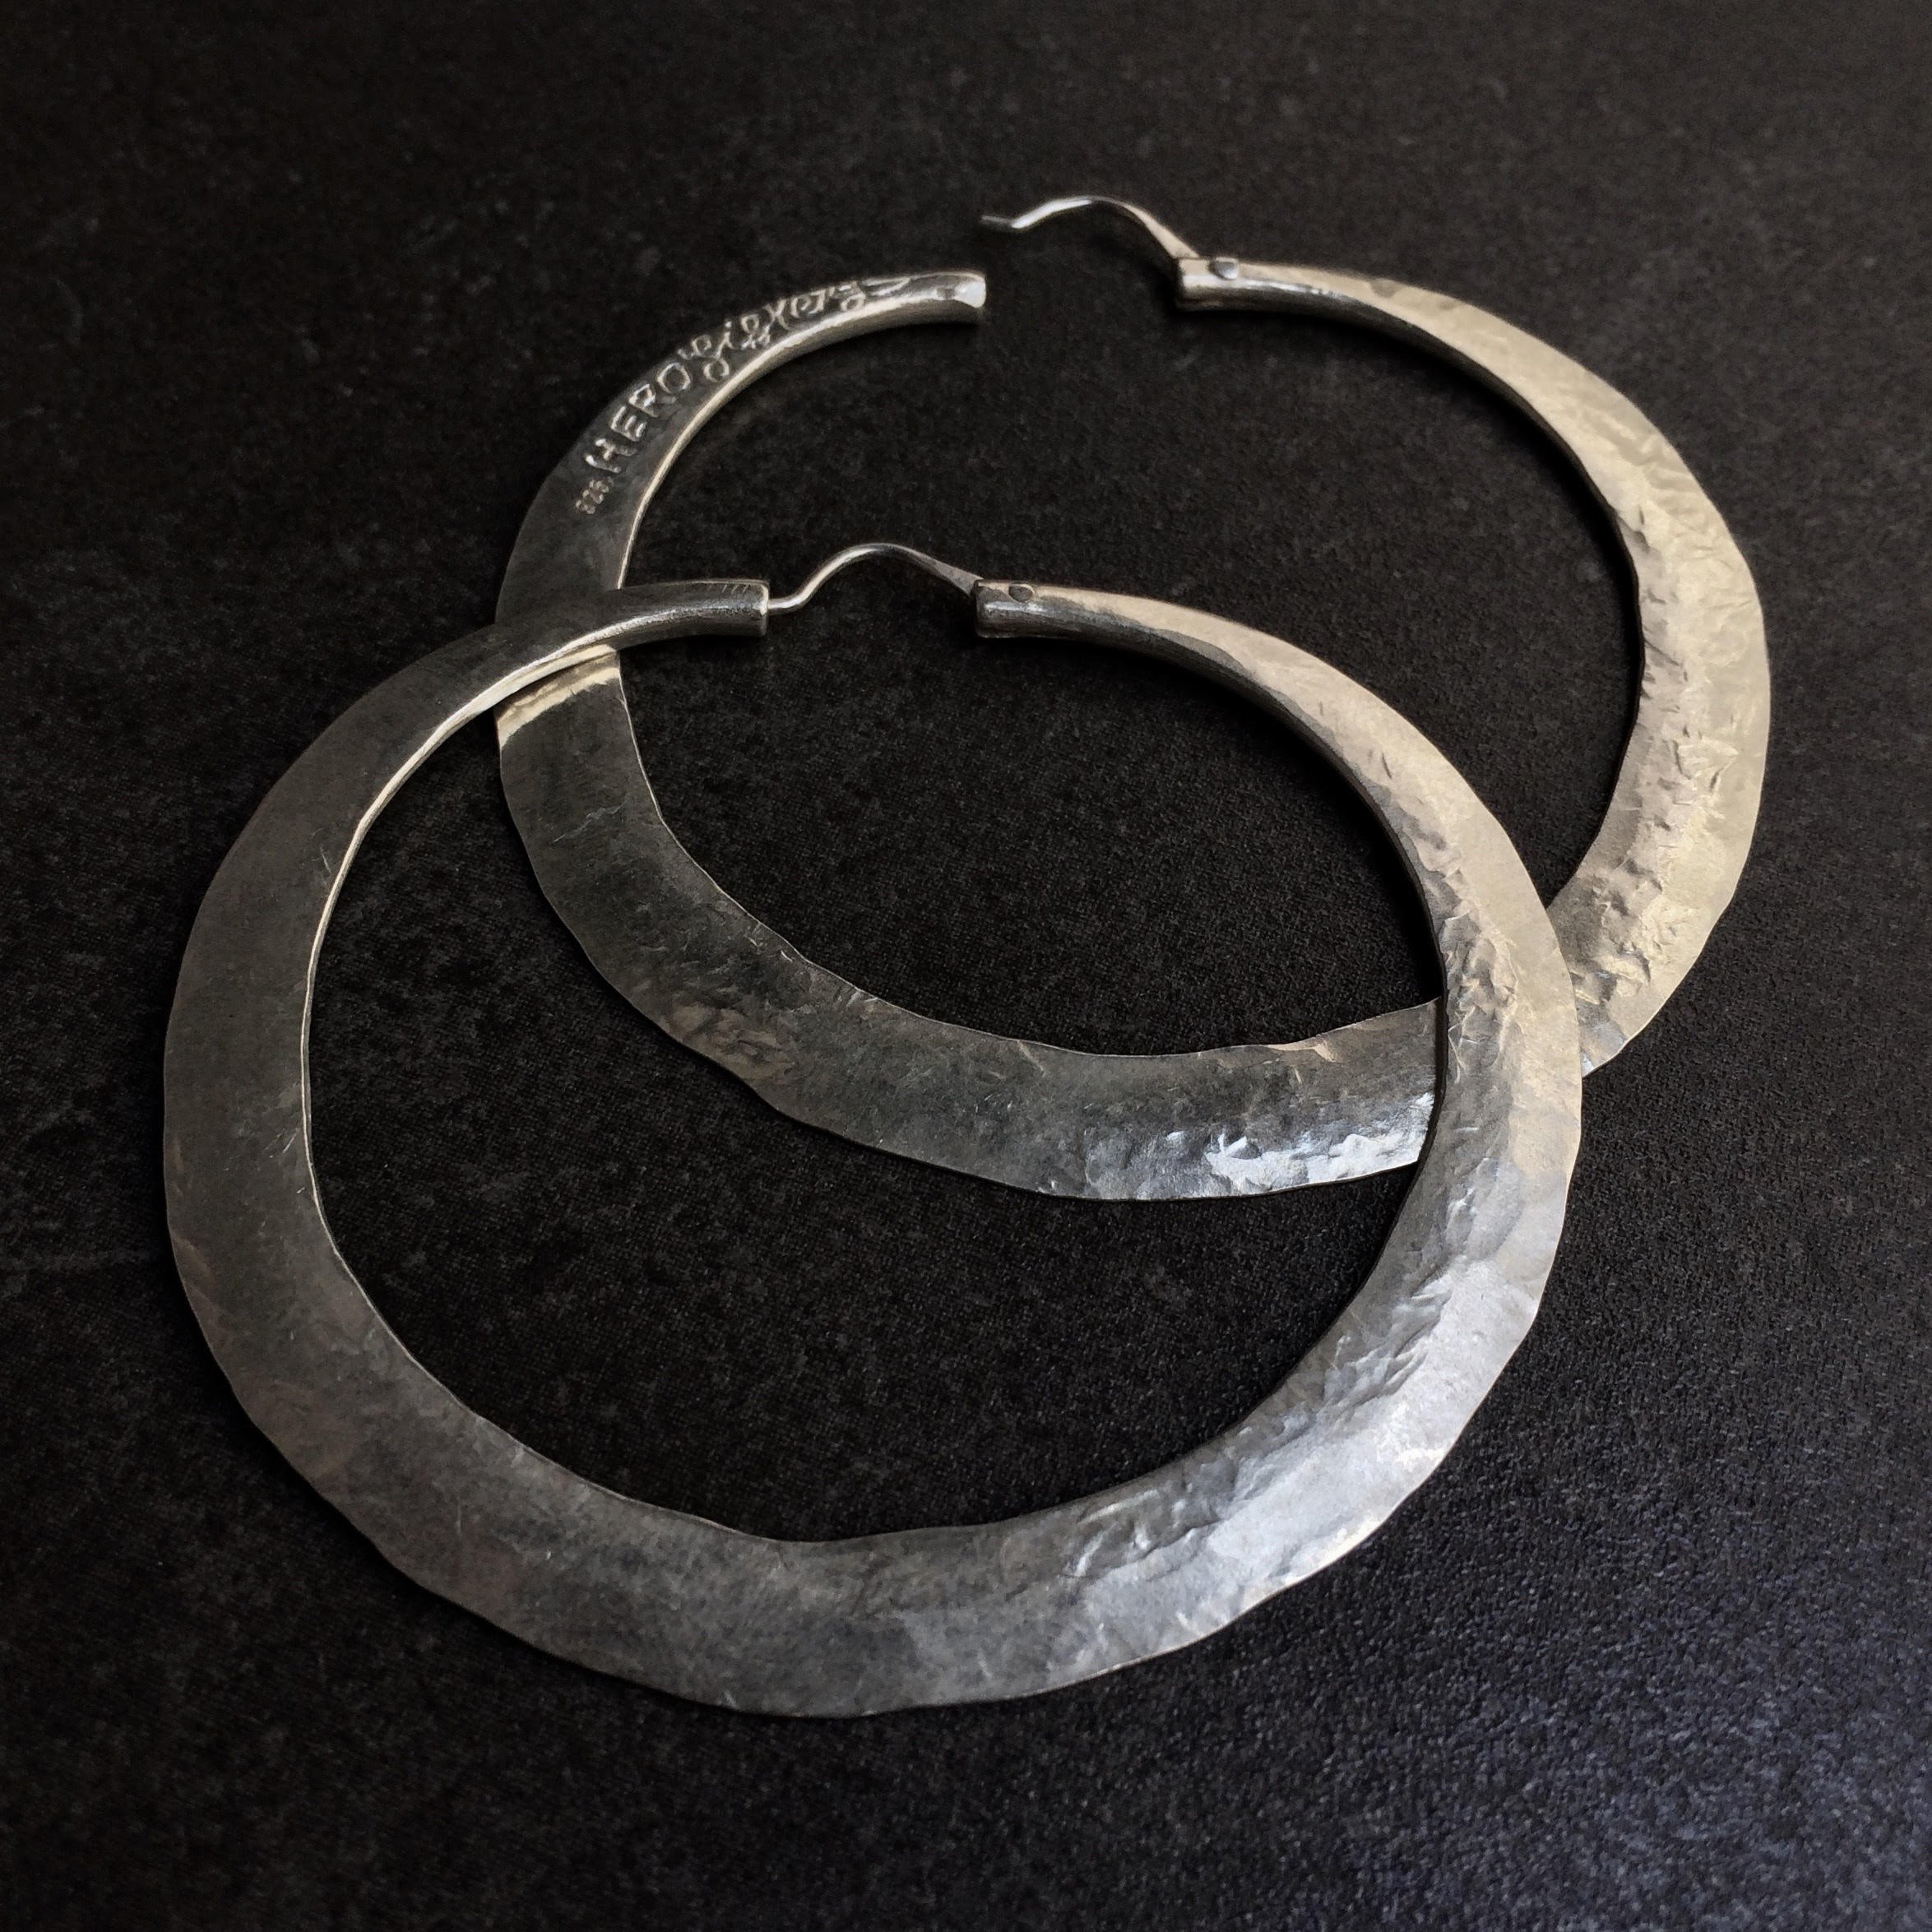 HERO Hoops (large)  by herosisters - Luxury handmade silver jewelry and accessories